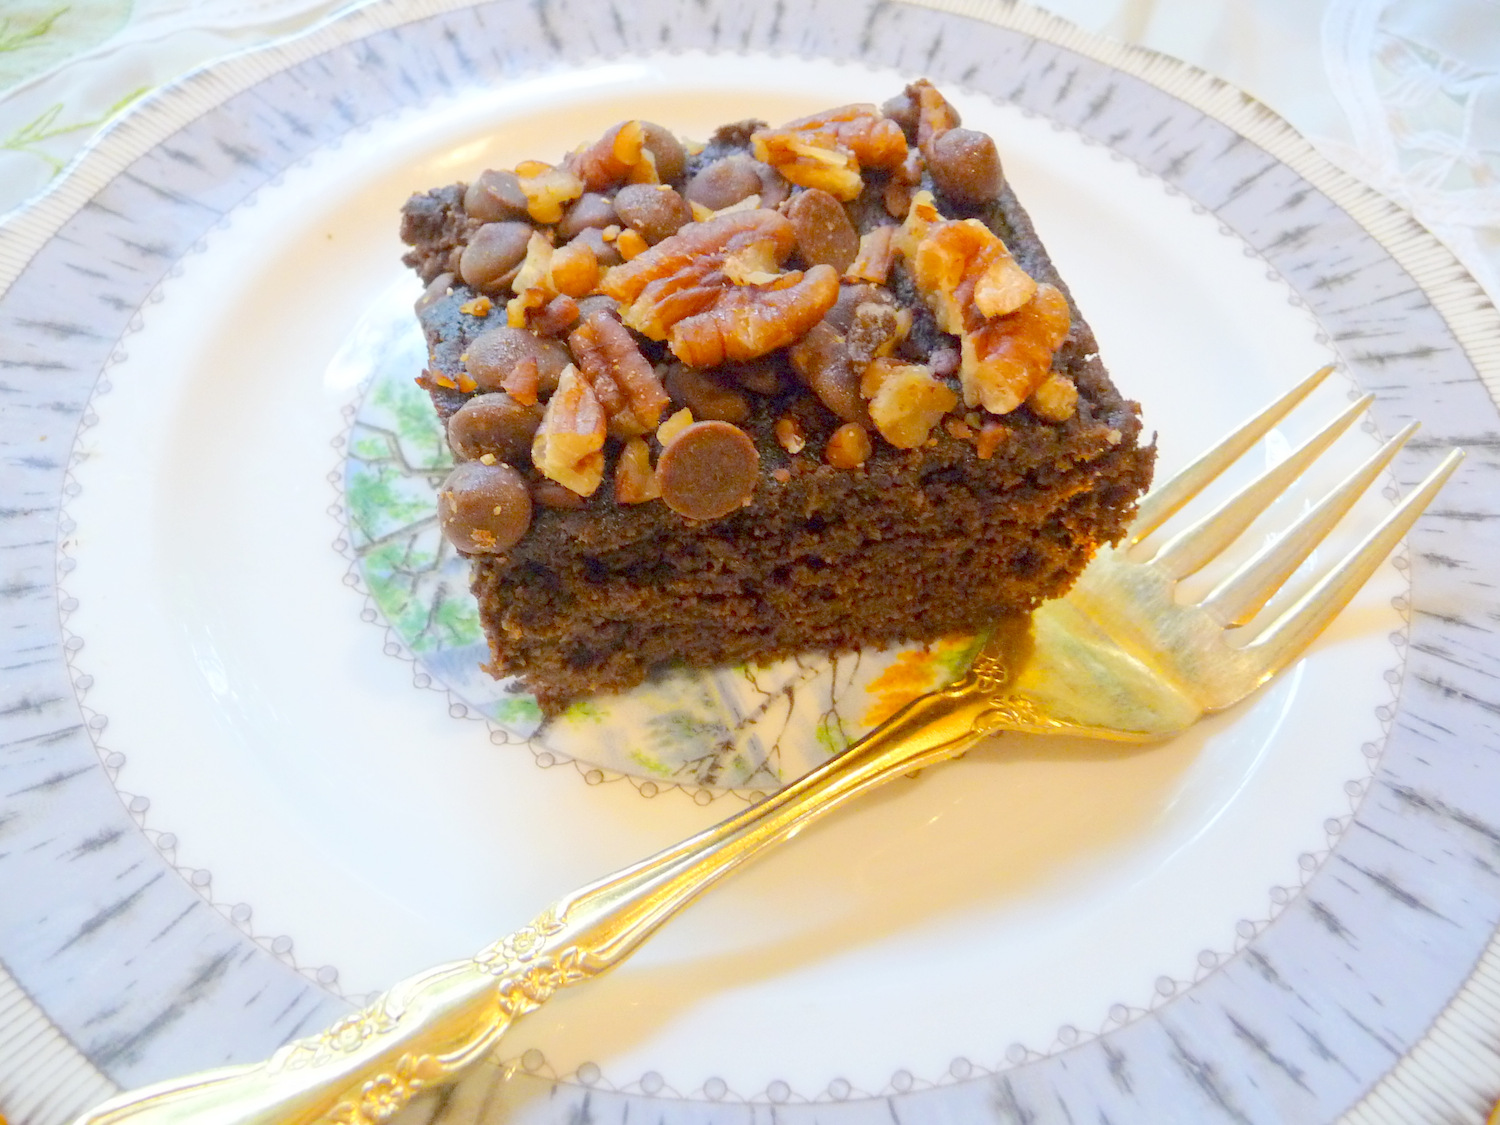 Chocolate Zucchini Cake With Applesauce